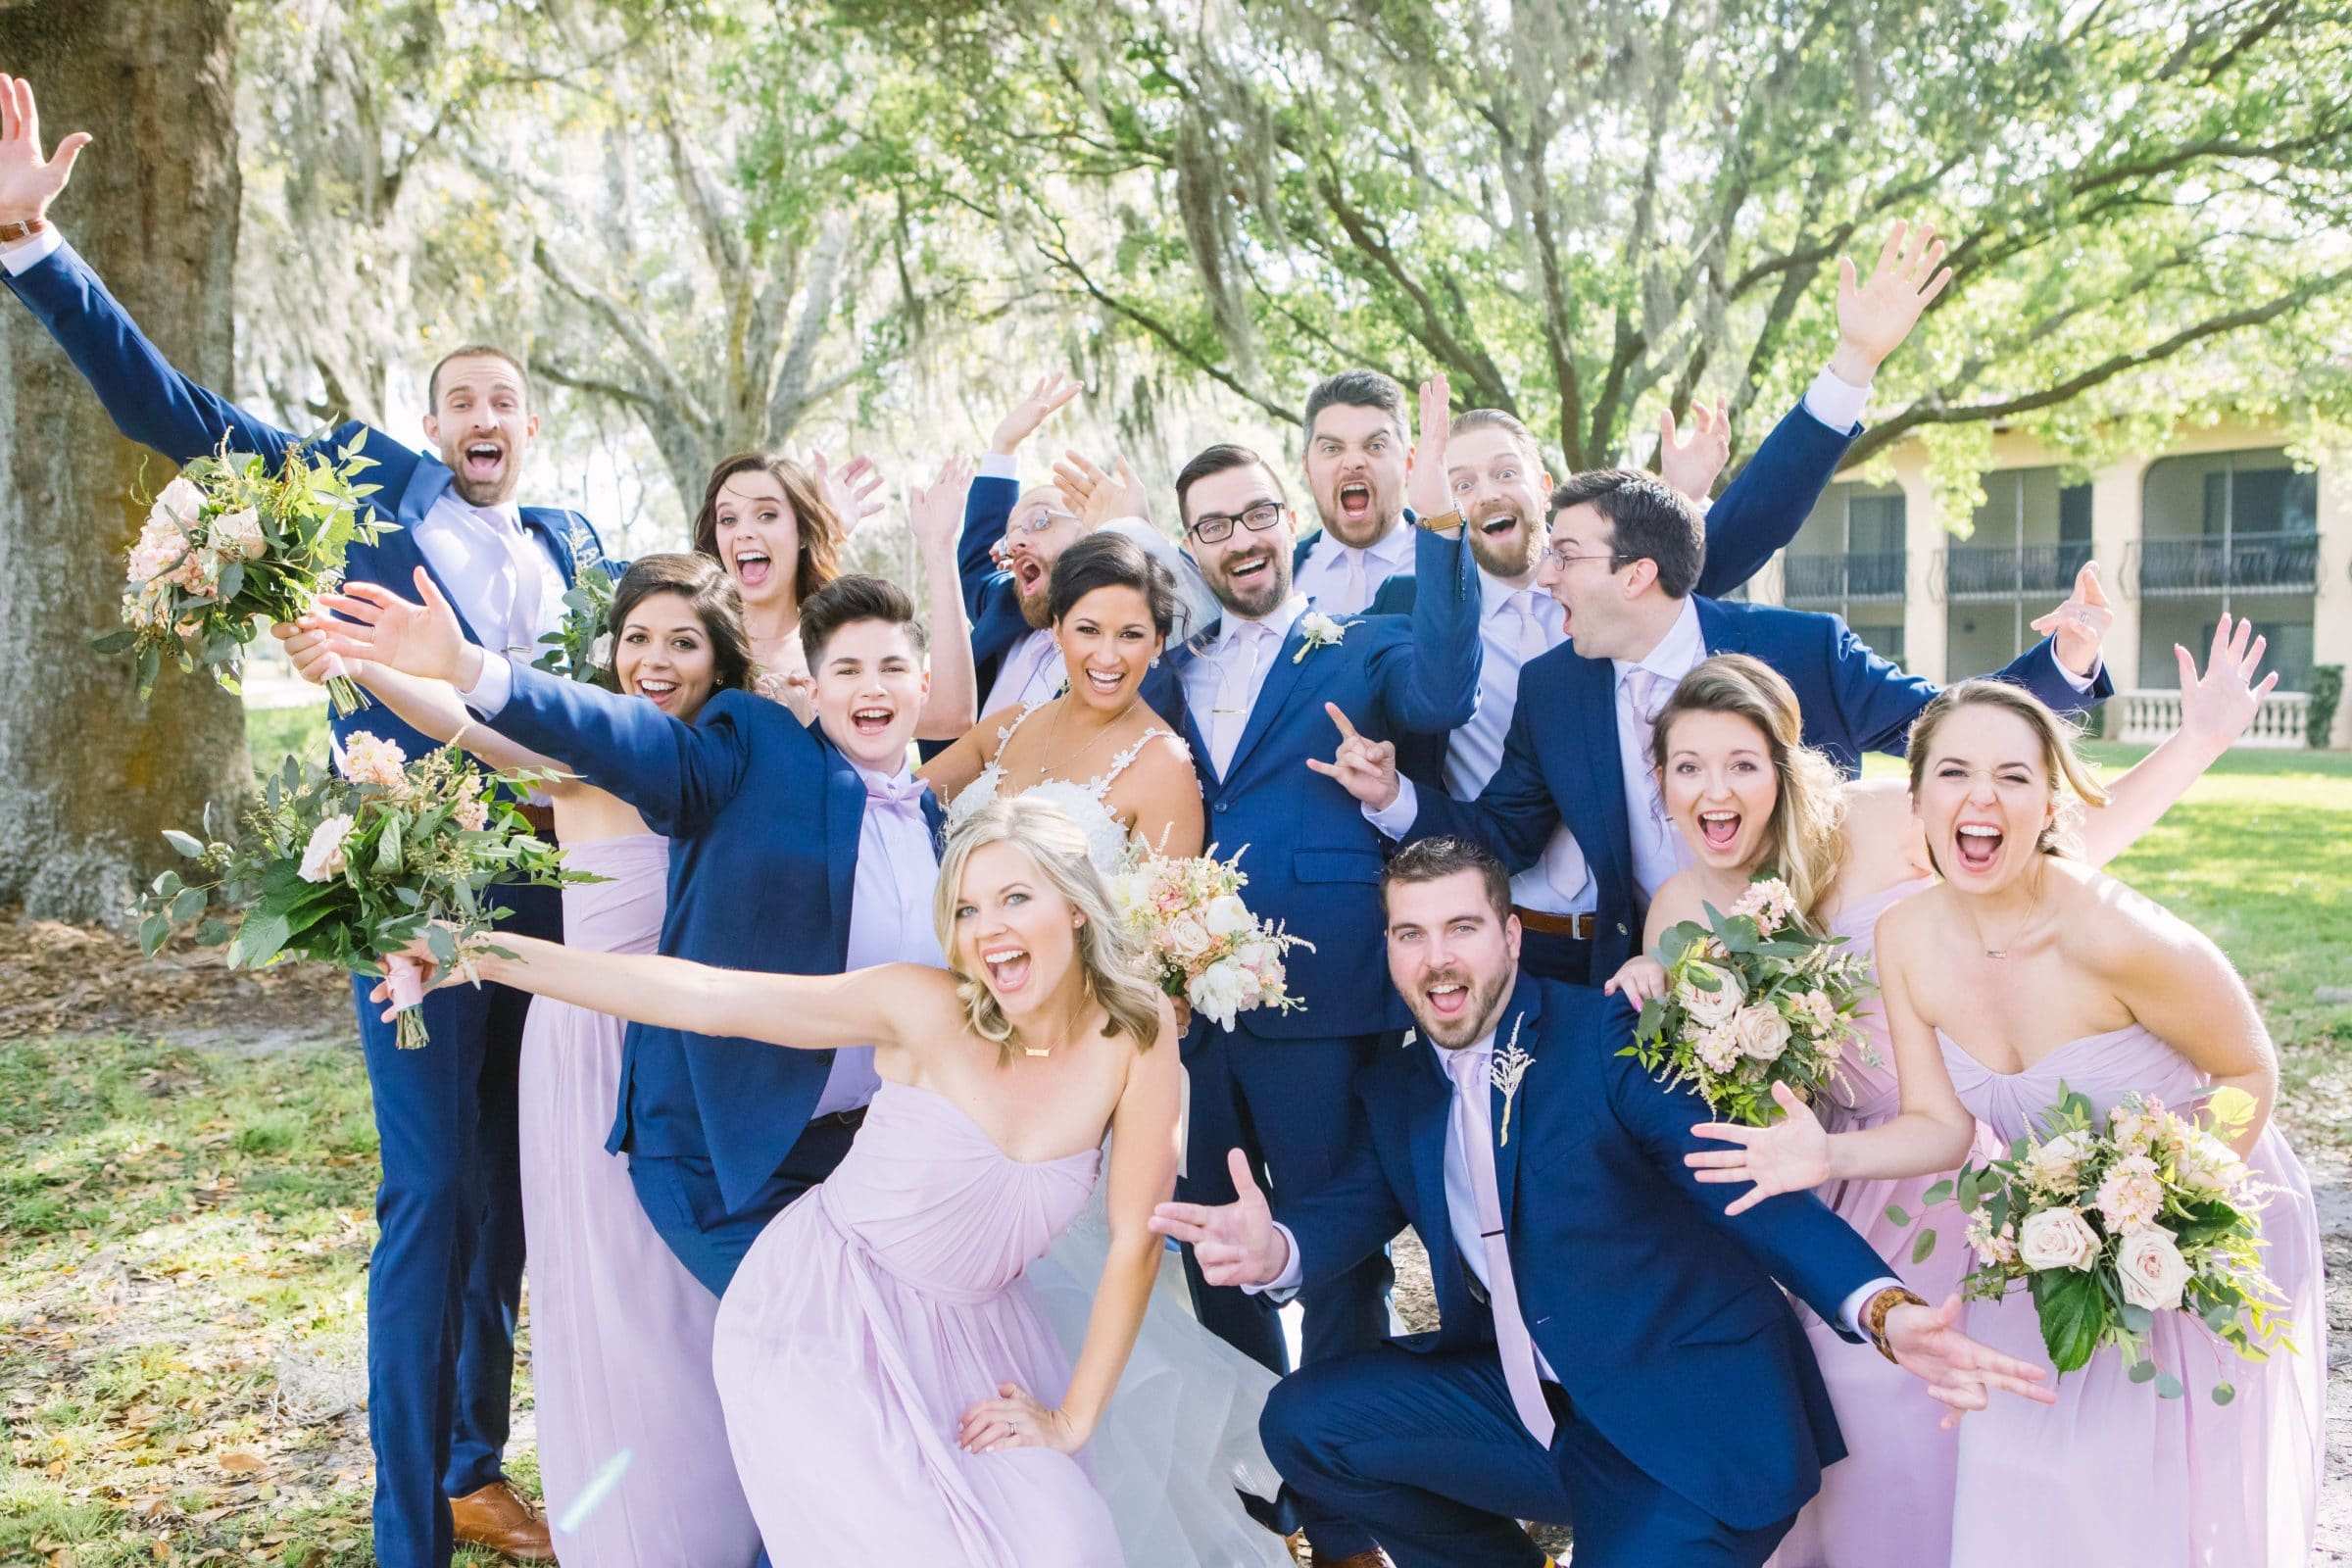 KMD Orlando Wedding Photgrapher Bridal Party Celebrating their Wedding Room Block